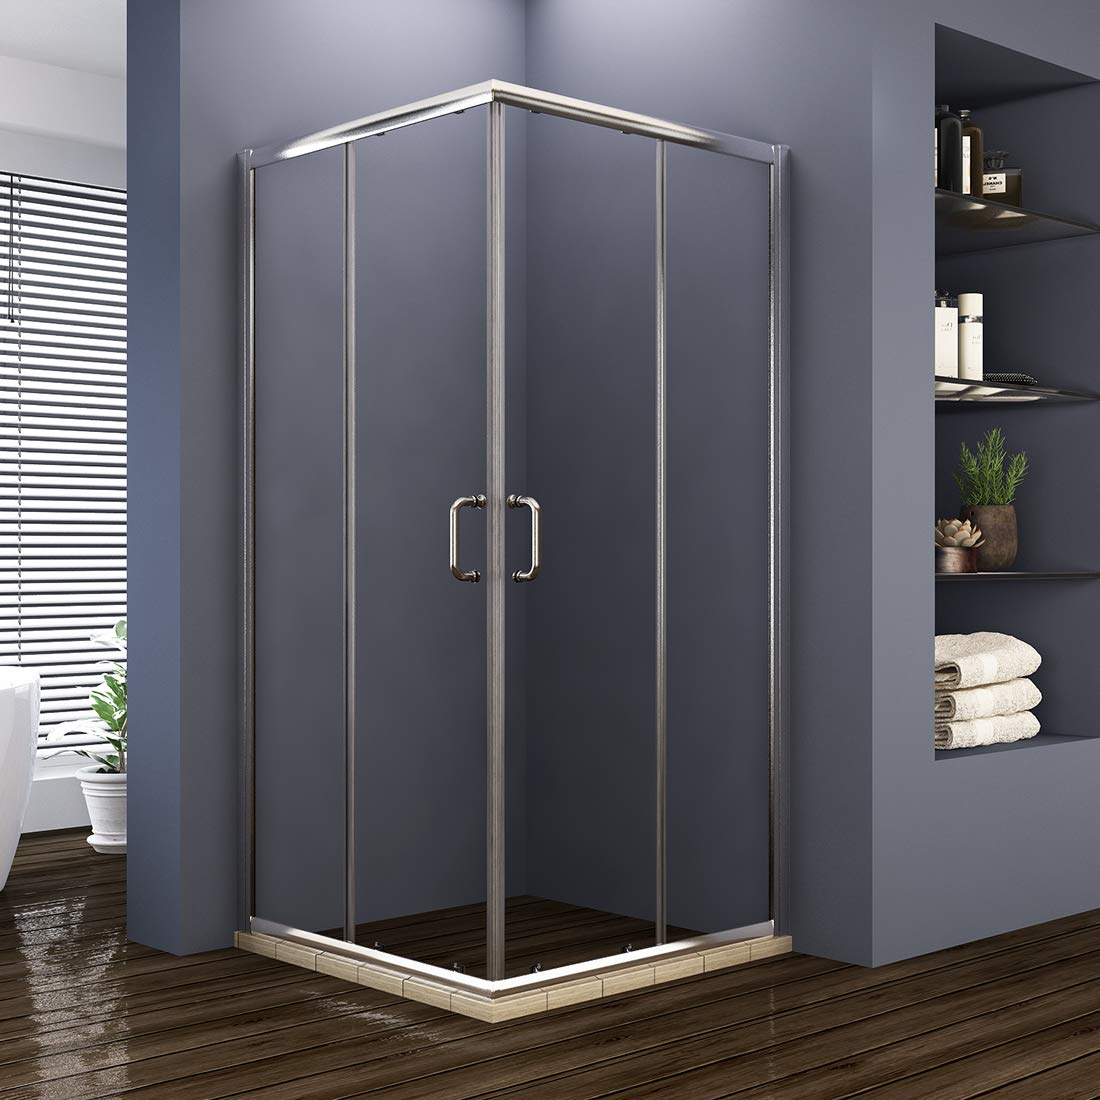 DreamLine Mirage-X 56-60 in. W x 72 in. H Frameless Sliding Shower Door in Brushed Nickel Left Wall Installation, SHDR-1960723L-04